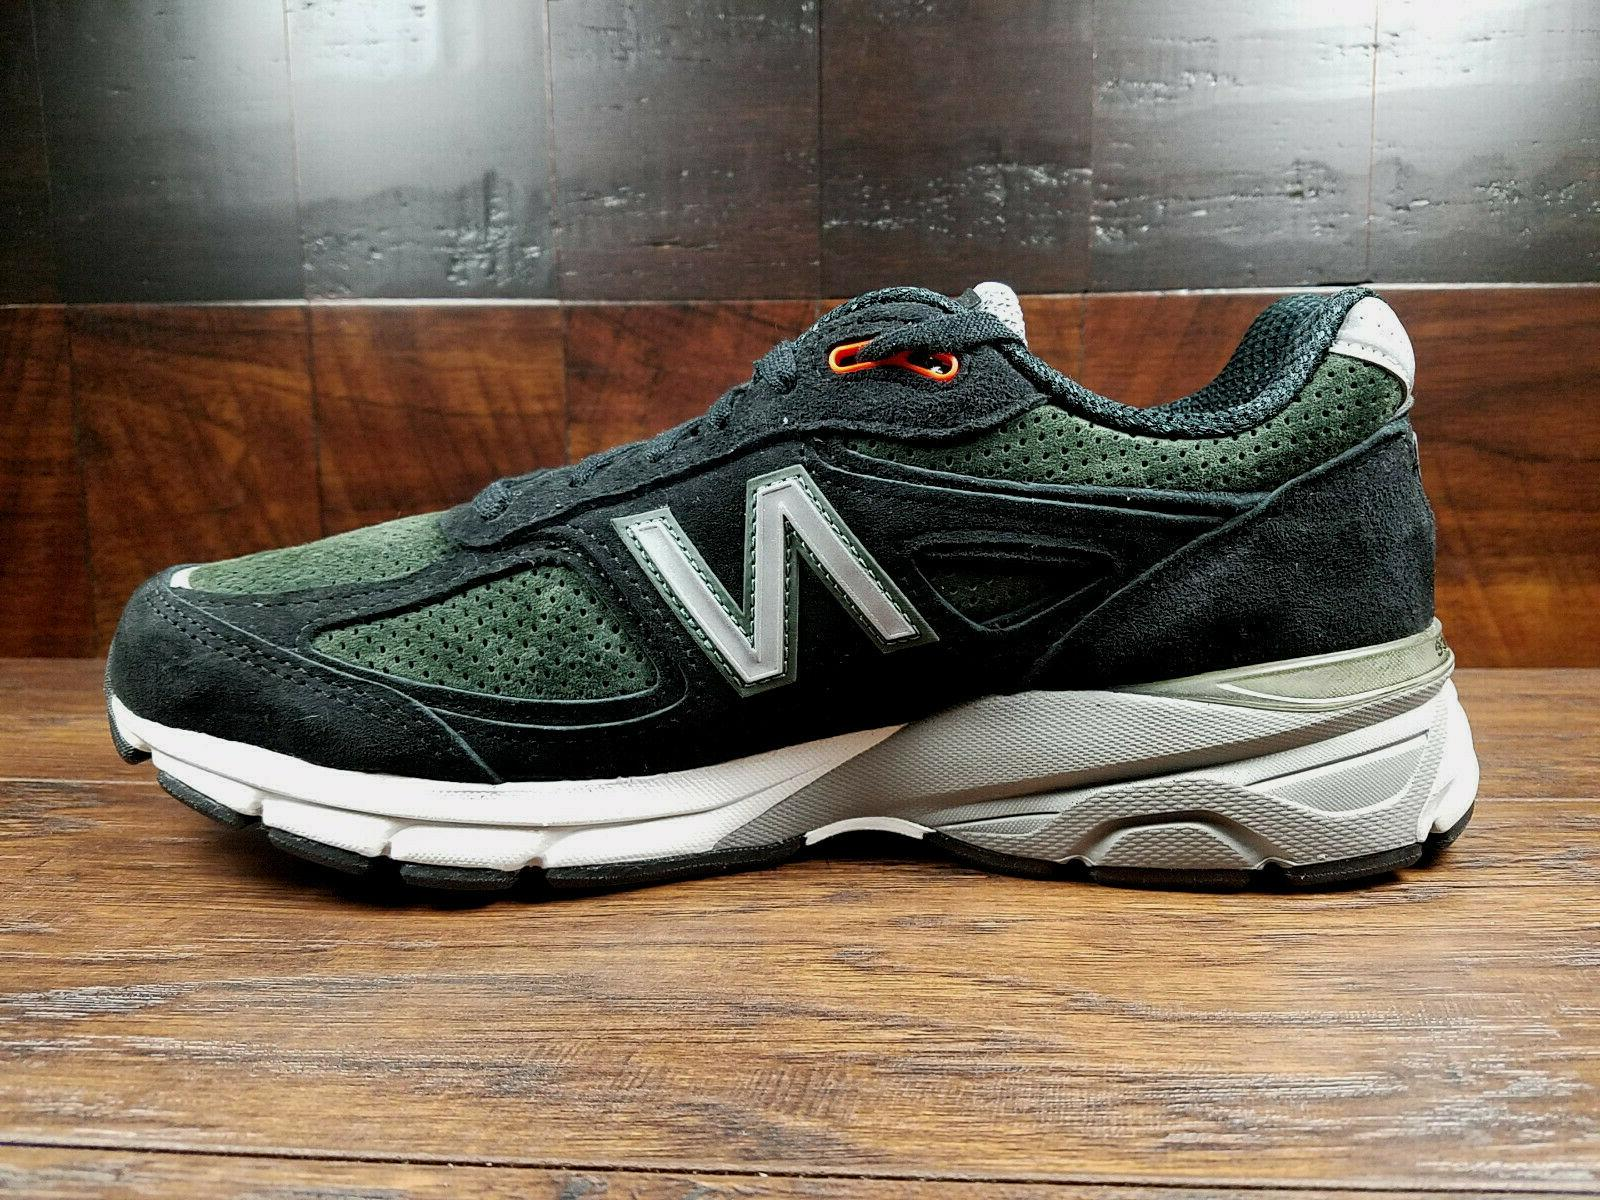 New Balance M990MB4 Suede Mens Running 990v4 in